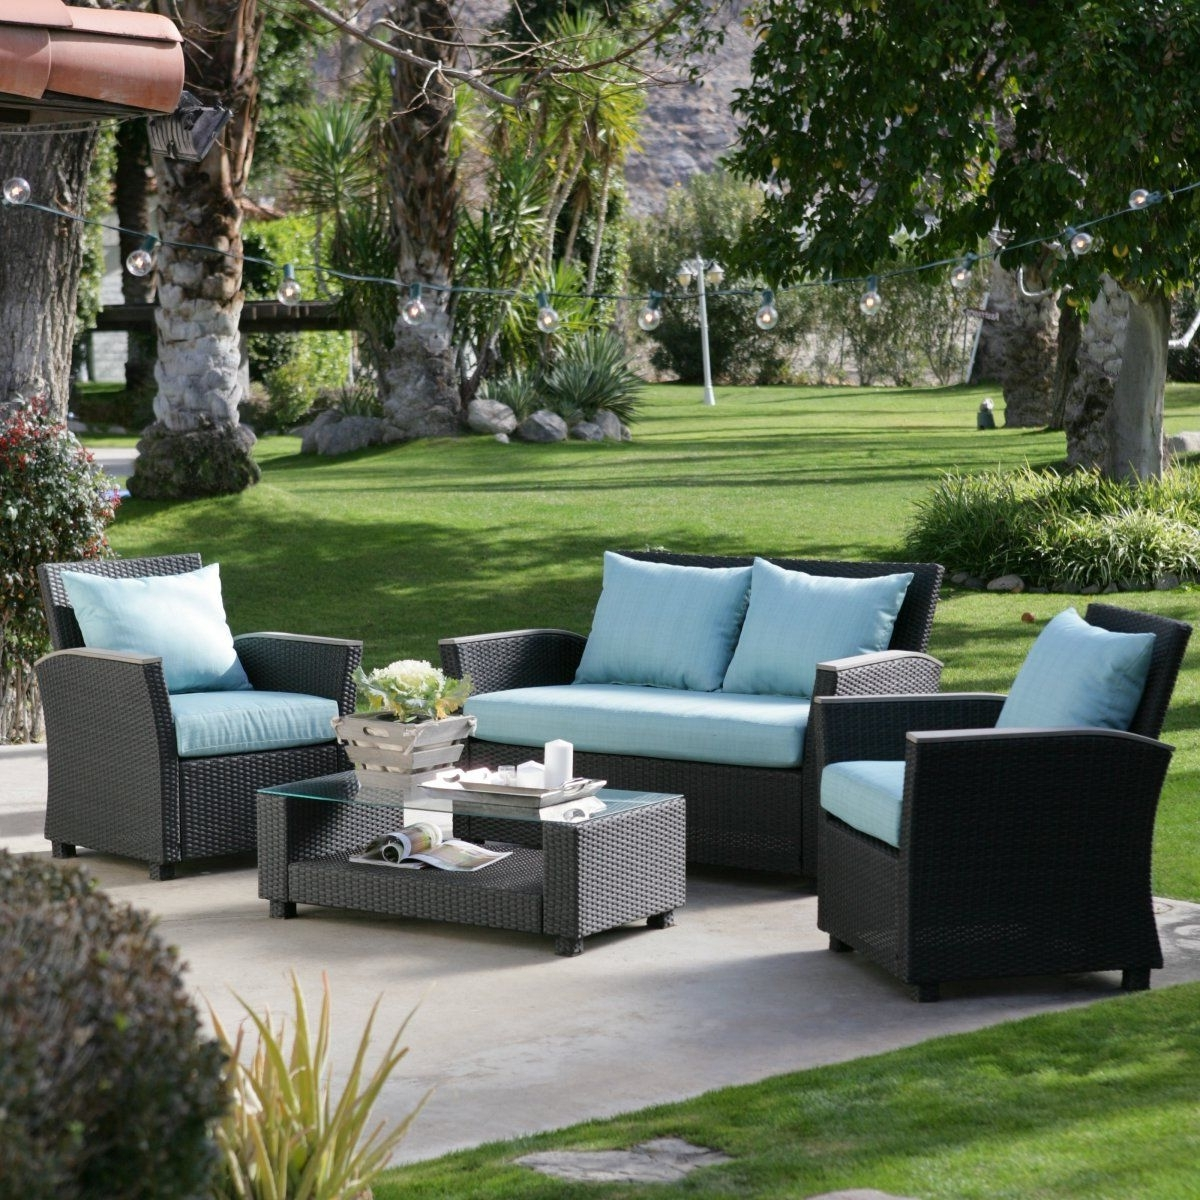 Most Recent Hayneedle Patio Conversation Sets Within $1300 Delphi All Weather Chocolate Wicker Conversation Set – Outdoor (View 16 of 20)